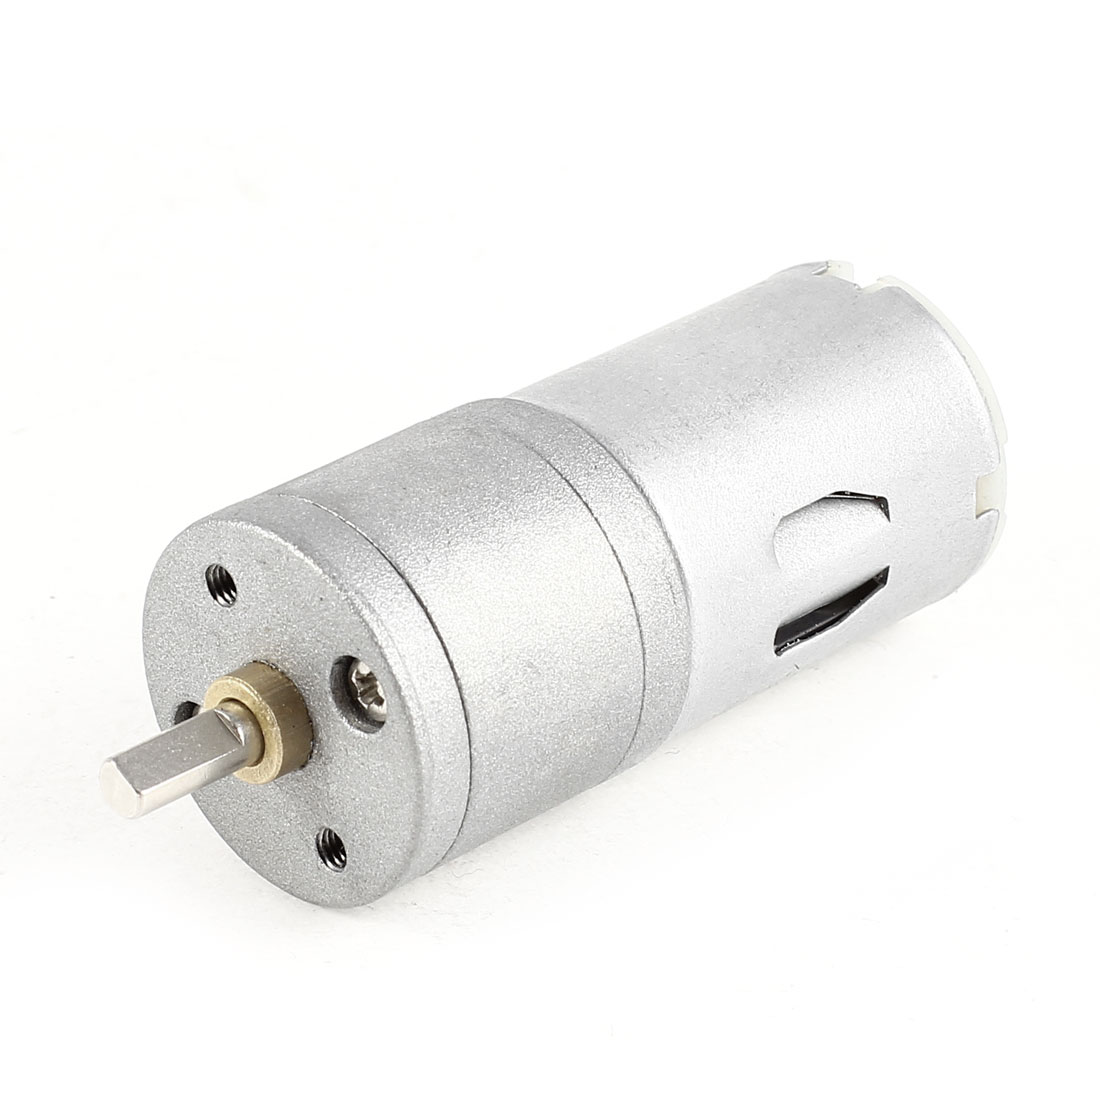 4mm Round Shaft Cylinder Gear Box Powerful Motor 250RPM DC 12V